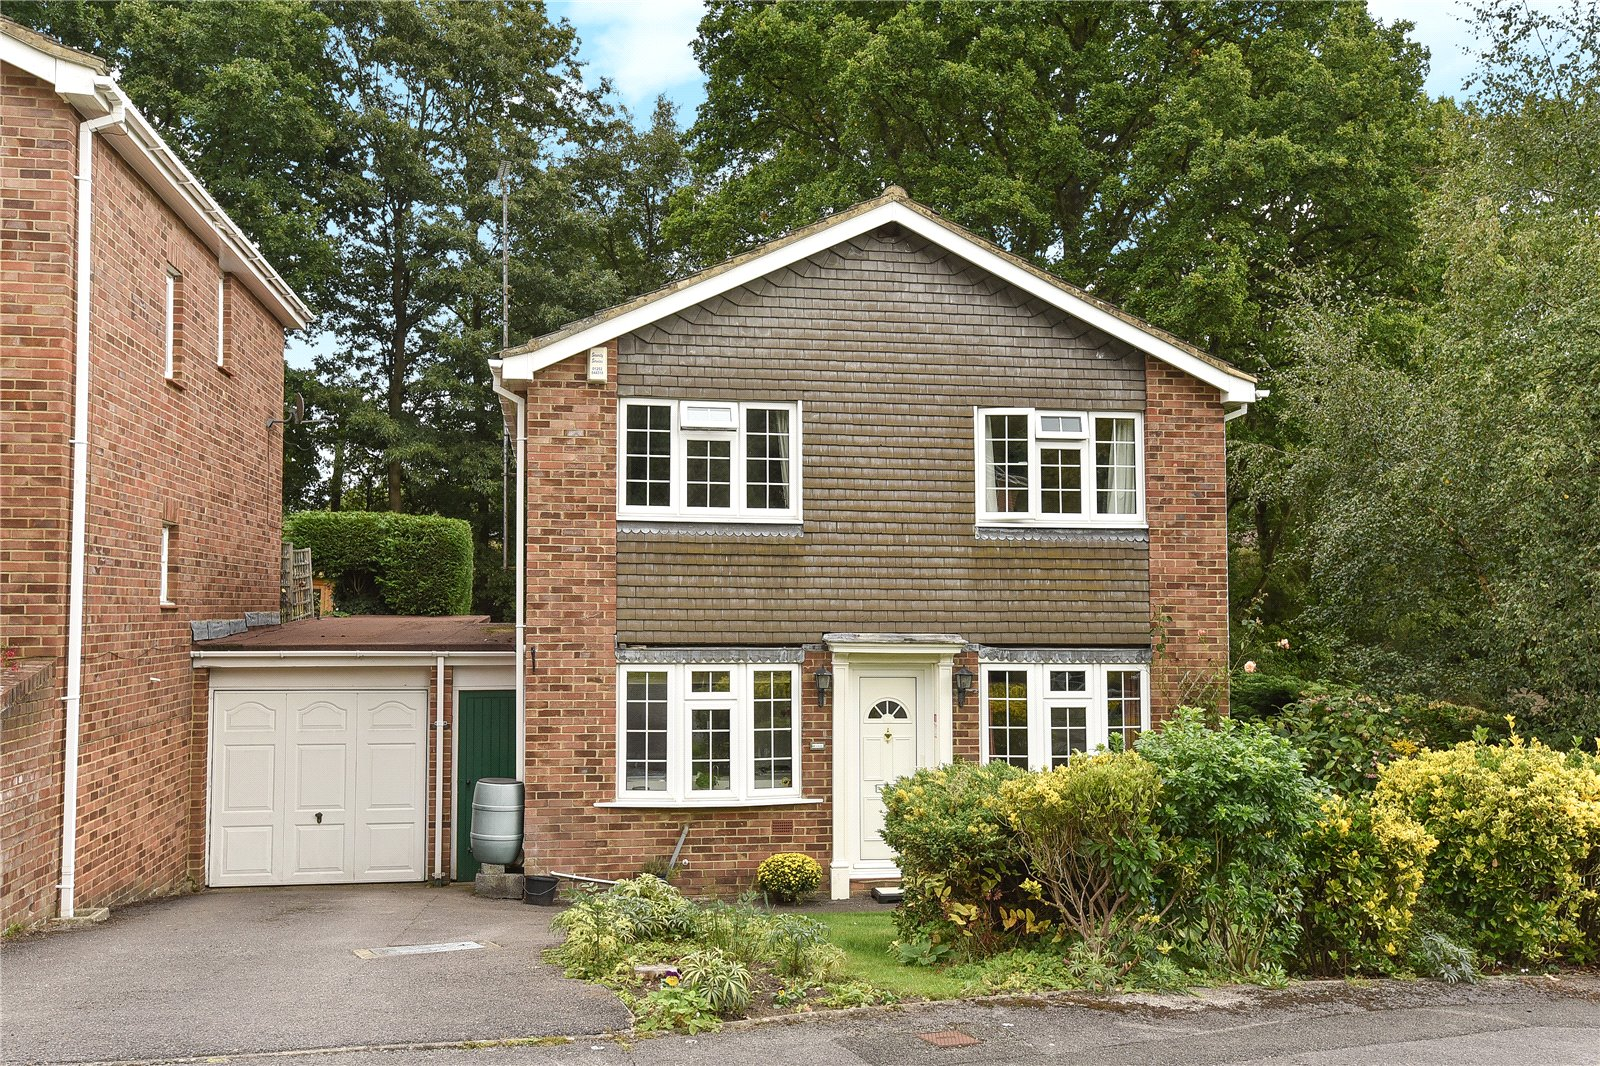 4 Bedrooms Detached House for sale in The Brambles, Crowthorne, Berkshire, RG45